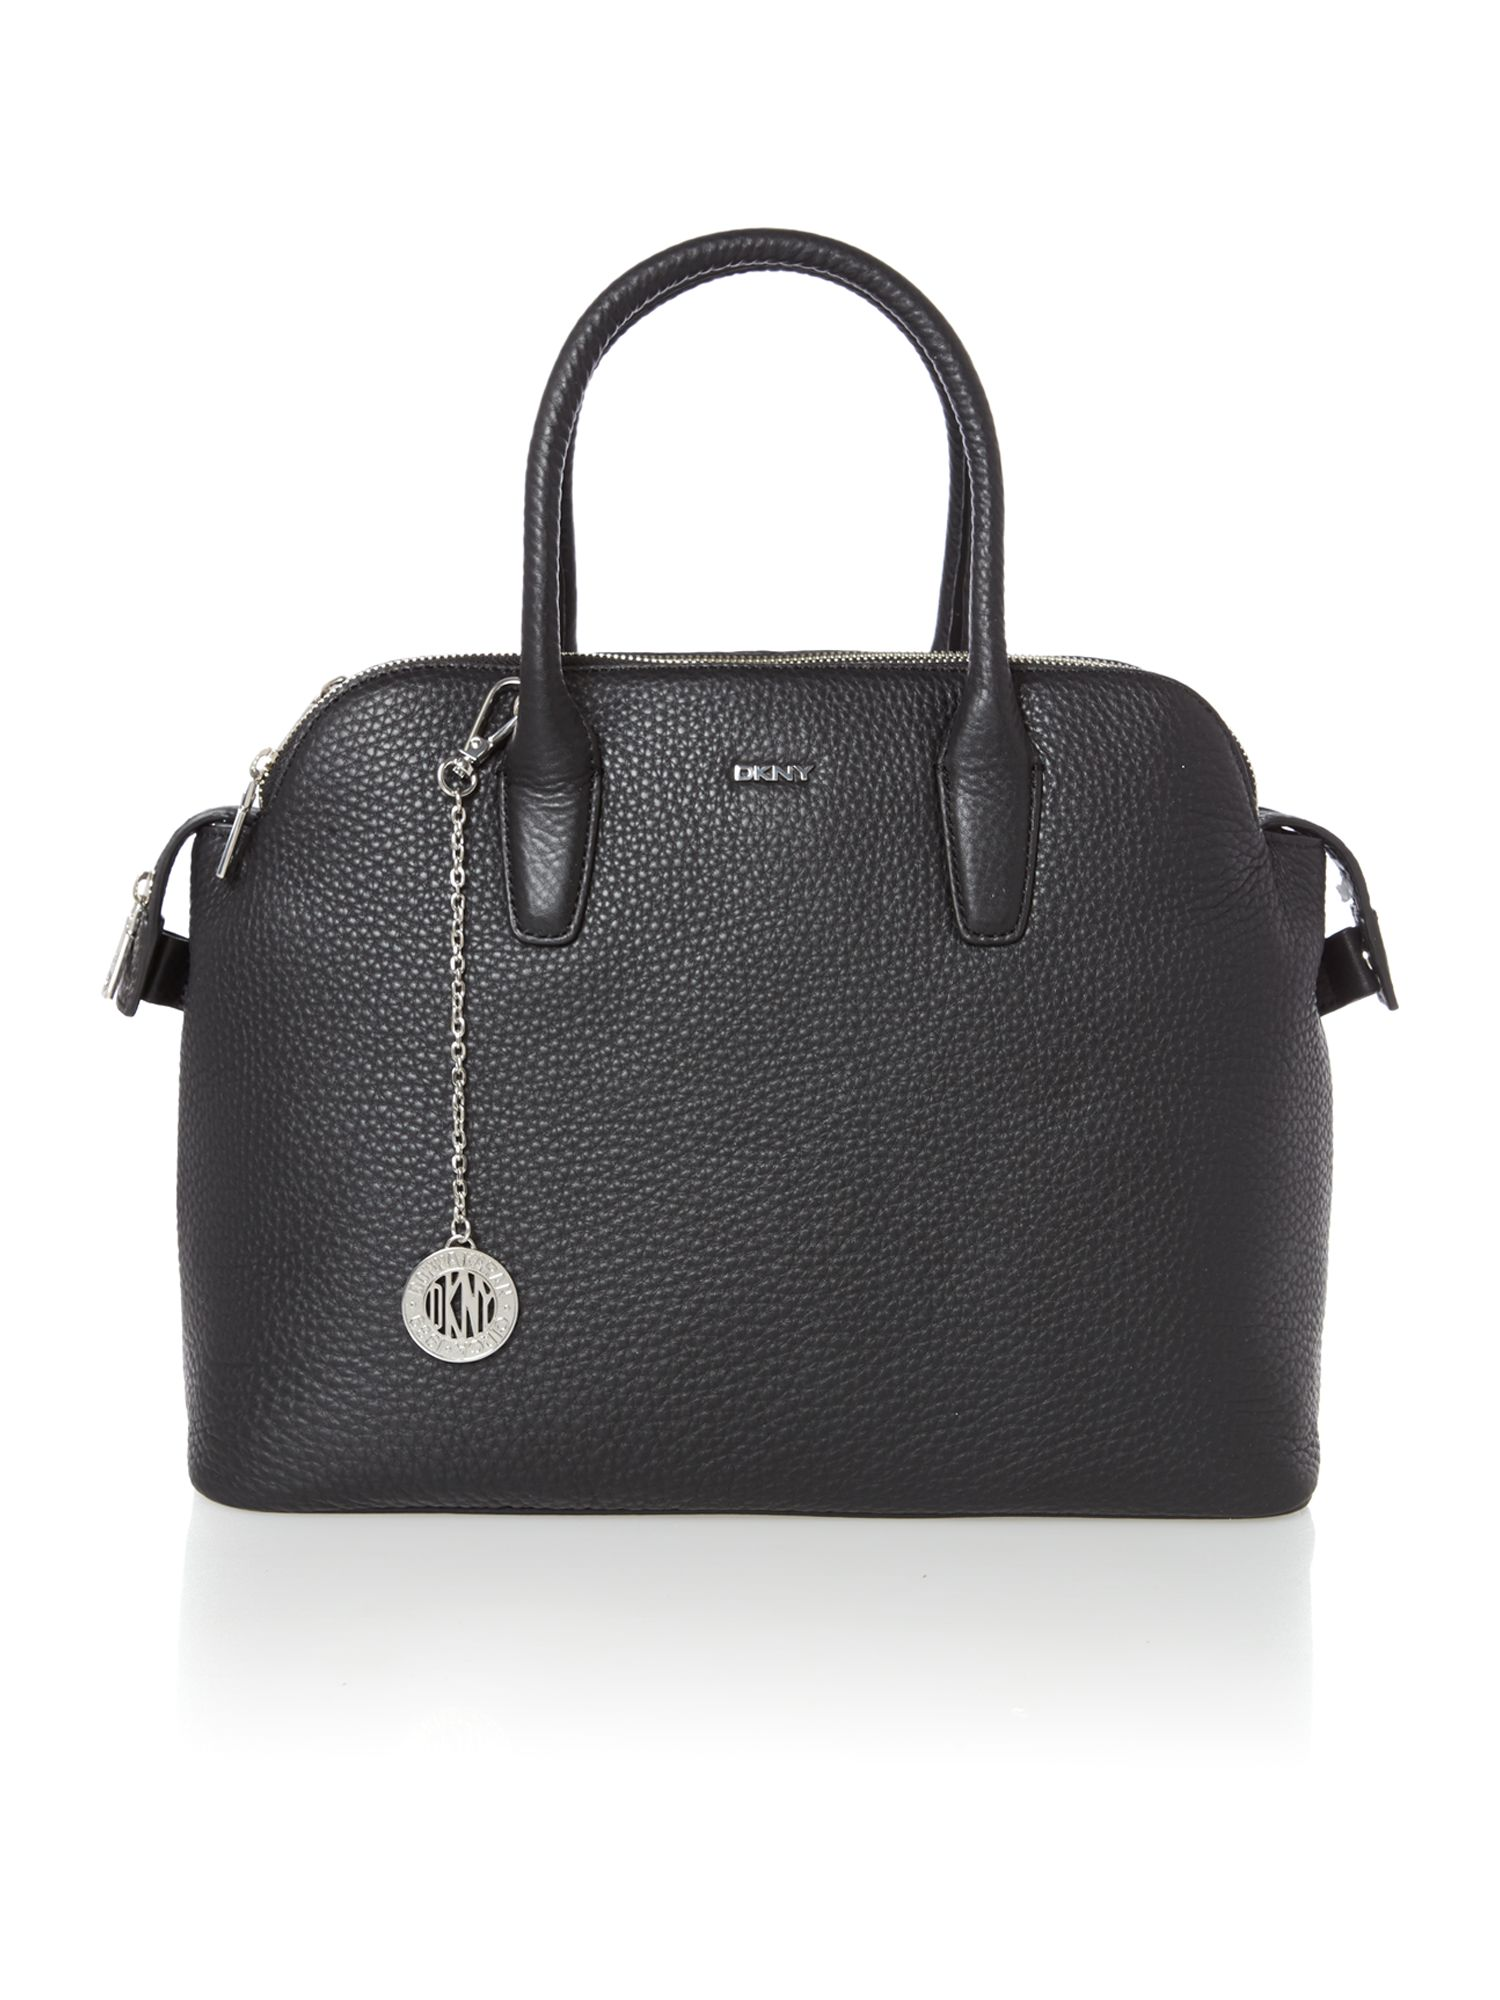 Tribeca black tote bag